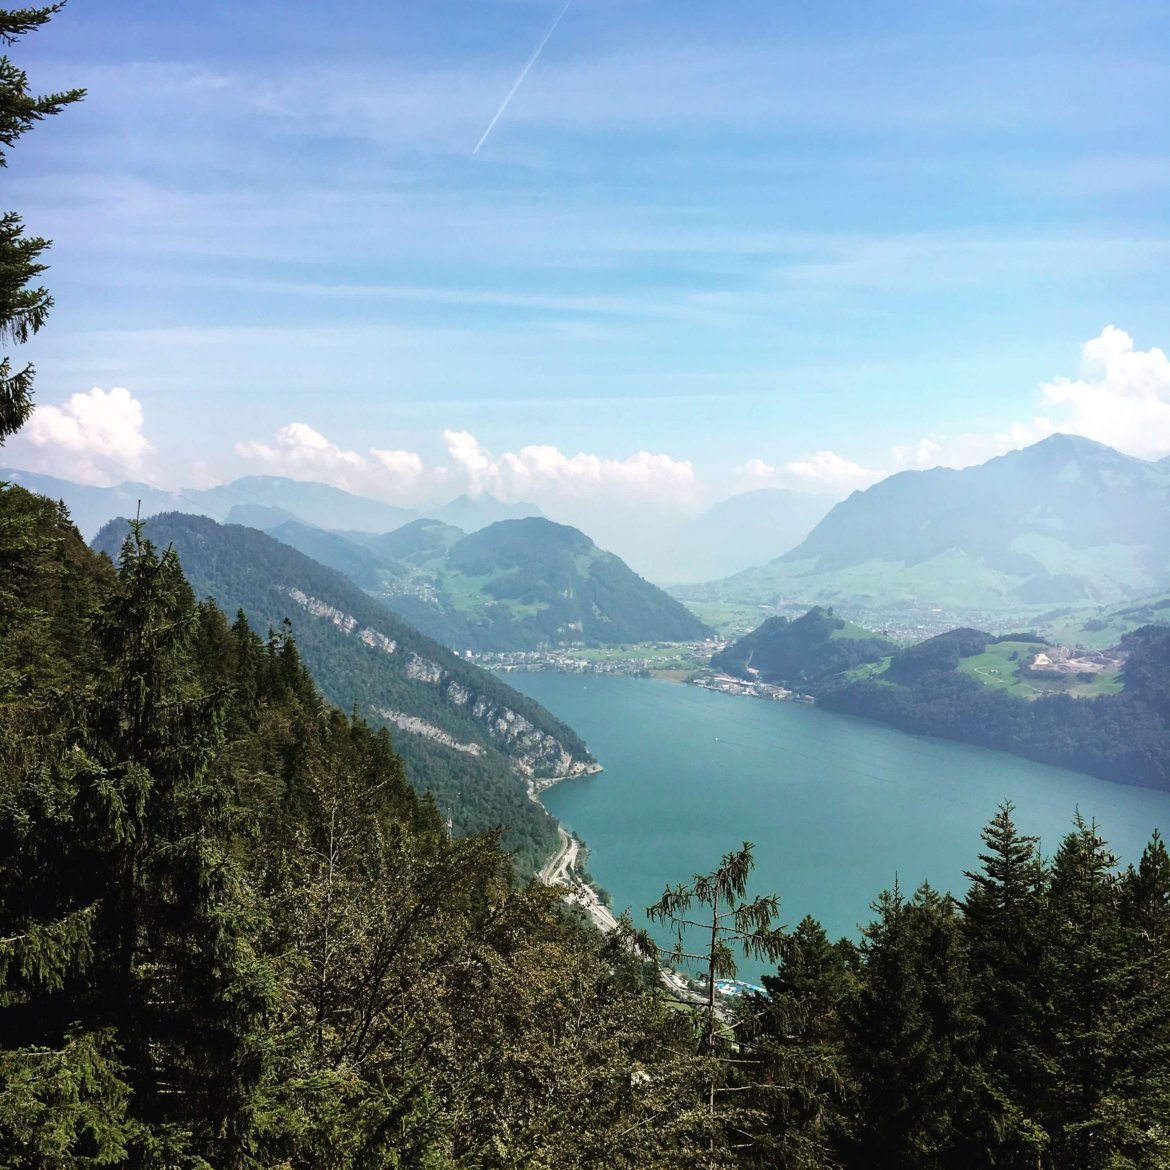 View of Lake Lucerne from the cog railway on Mt Pilatus | Golden round trip to Mount Pilatus featured by top international travel blogger, Tracy's Travels in Time